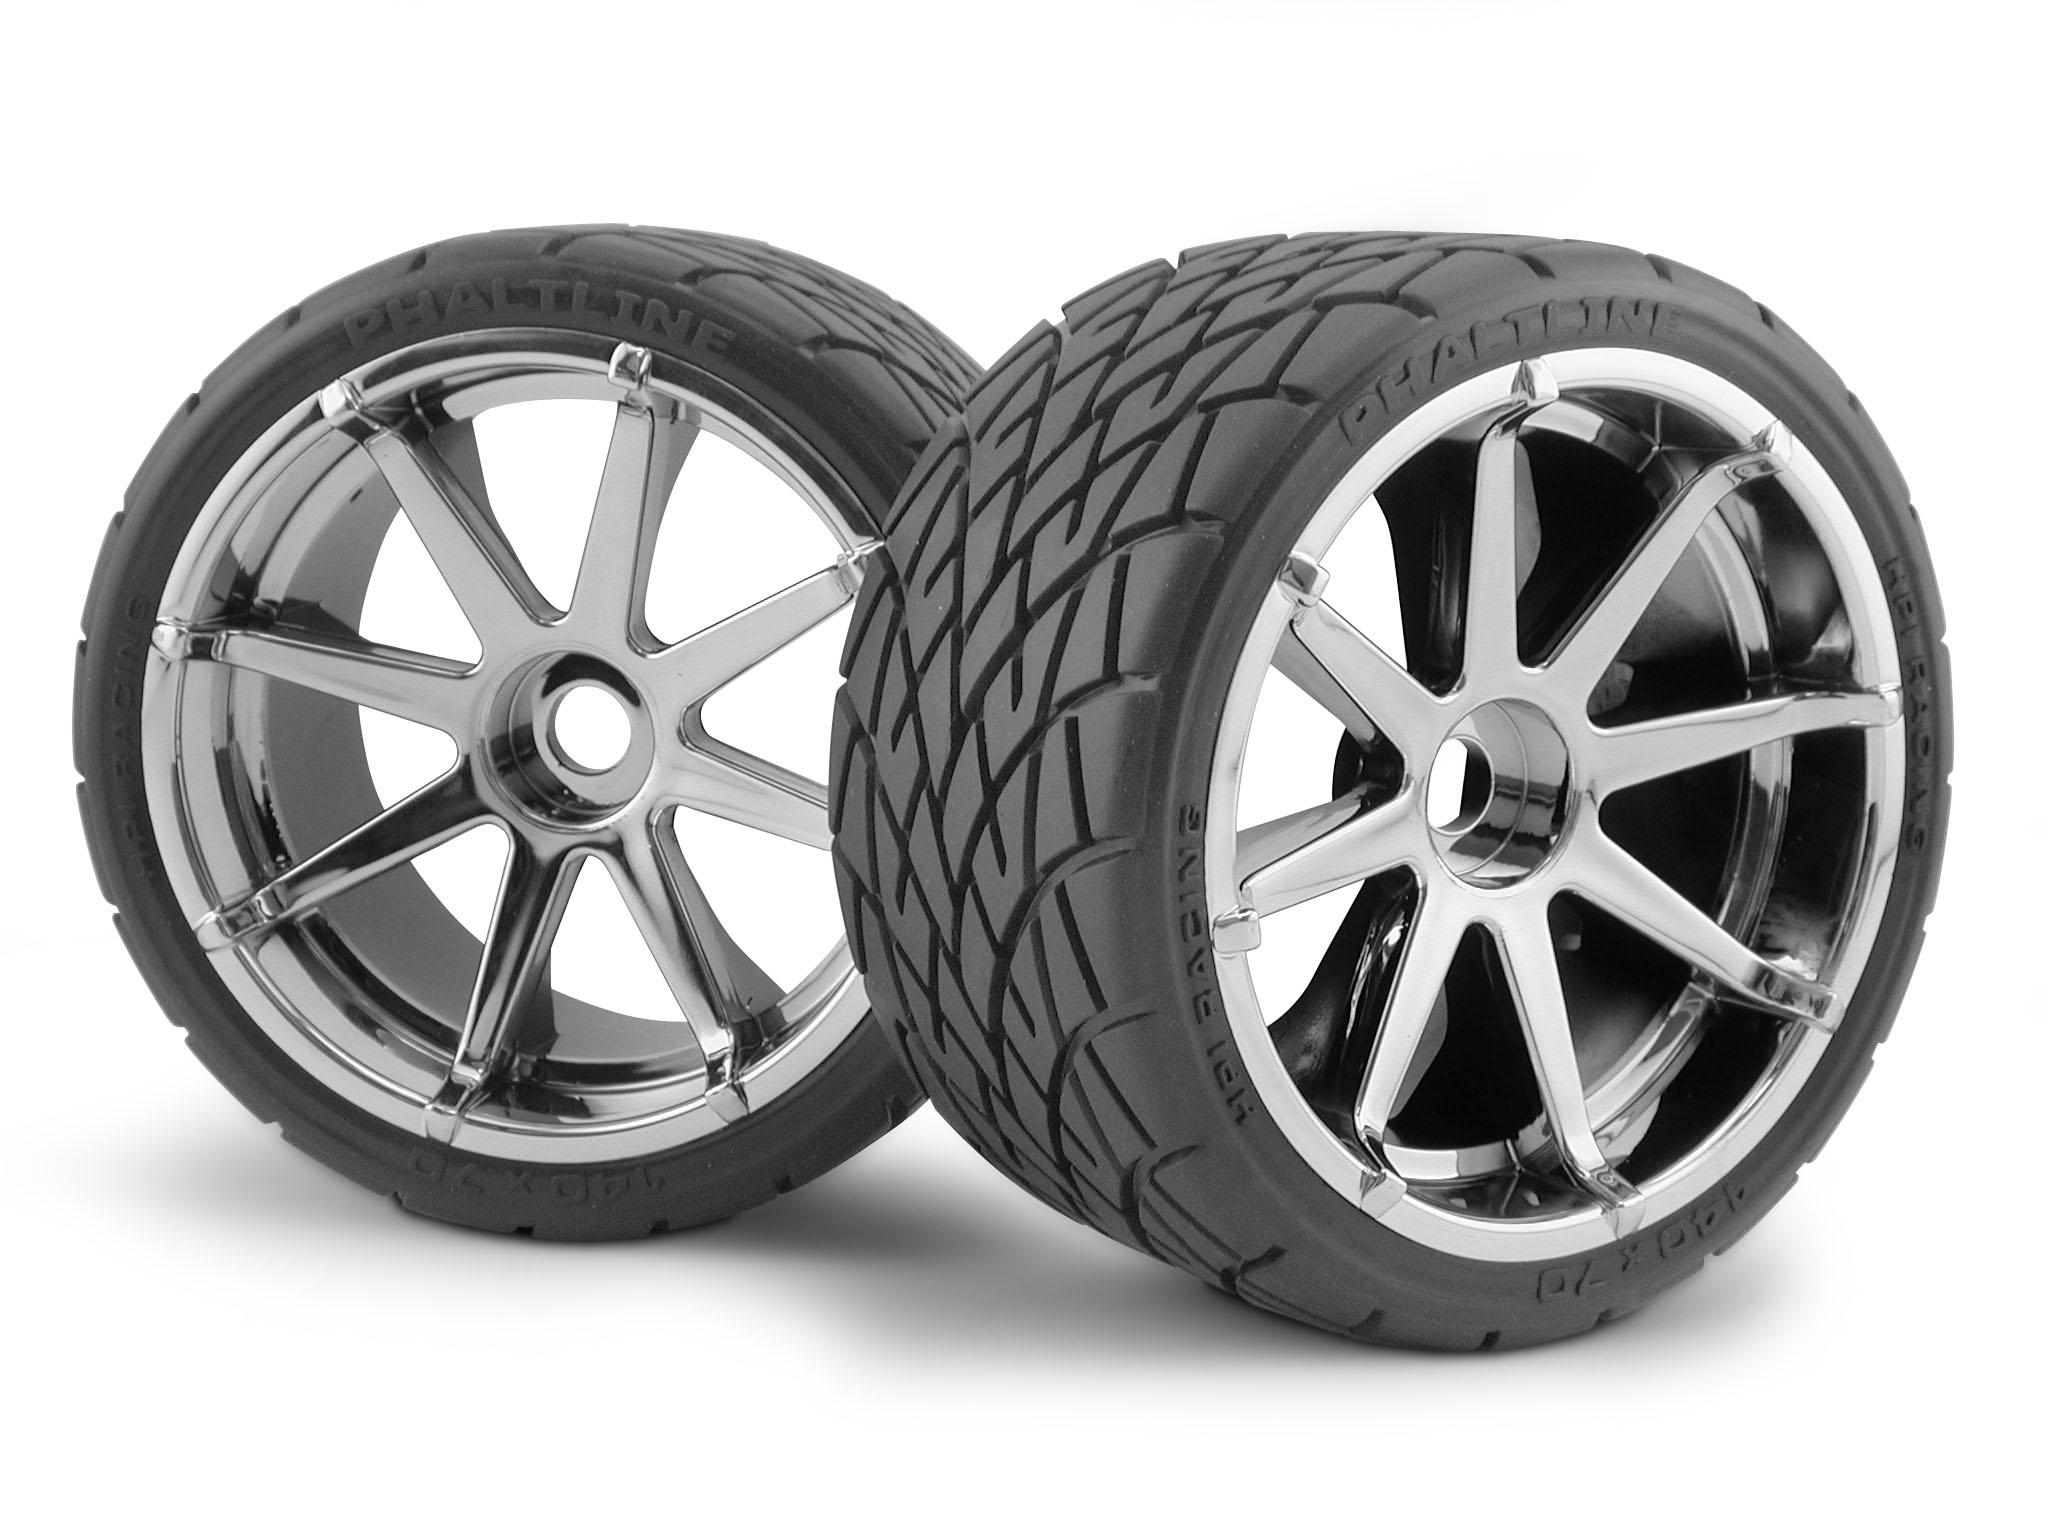 cheap hpi rc cars with Prweb11398691 on Hostile All Terrain Rear Tire Set For Hpi Baja 5b in addition Baja Mt Tires likewise Prweb11398691 also Traxxas Revo 2 5 moreover Rc Dual Nitro Engine.